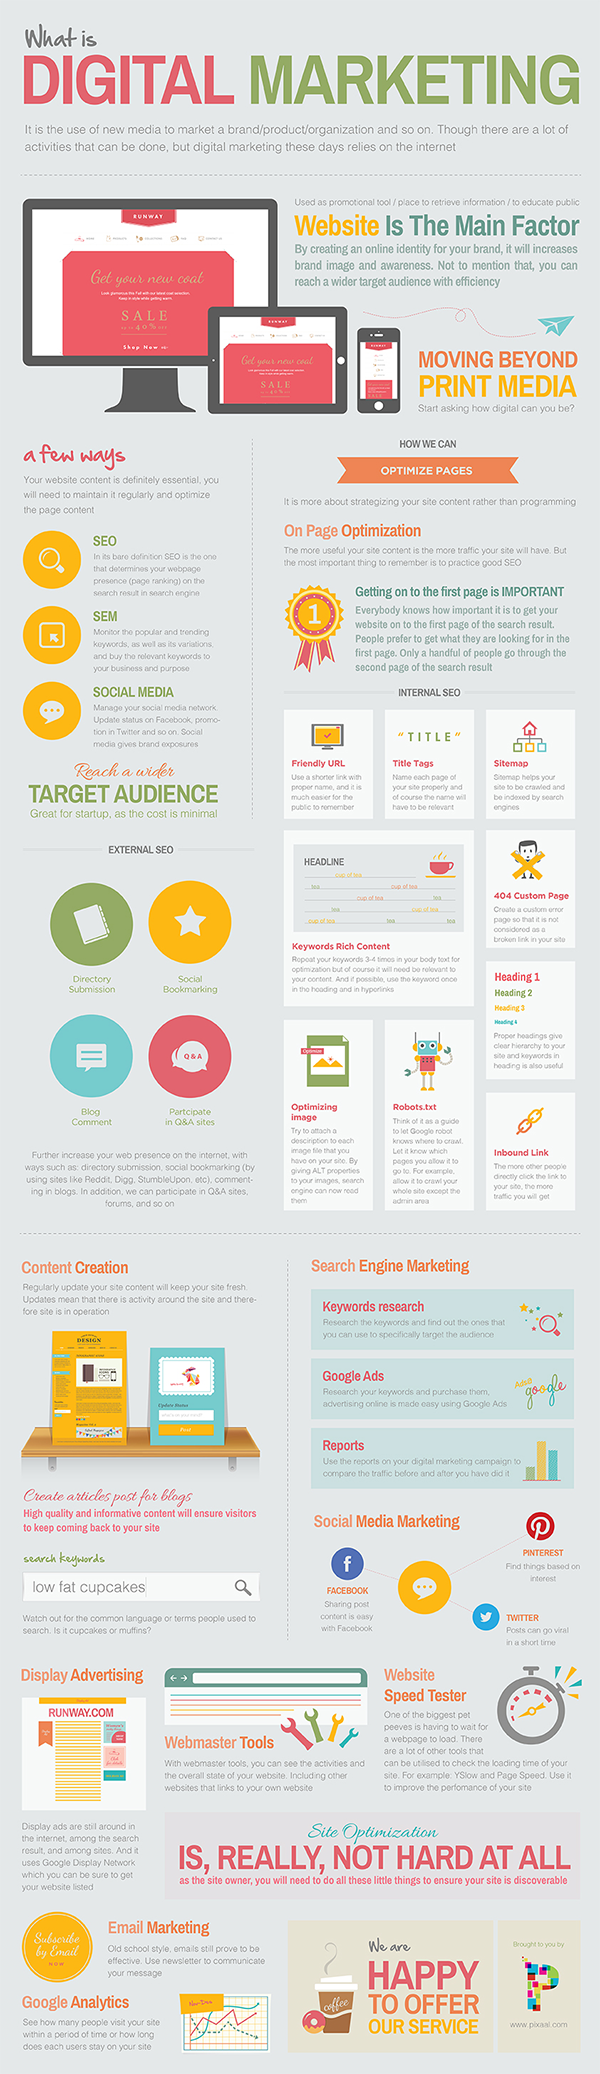 What Is Digital Marketing? #Inforgraphic | Xpand your horizons. www.xpand.sg